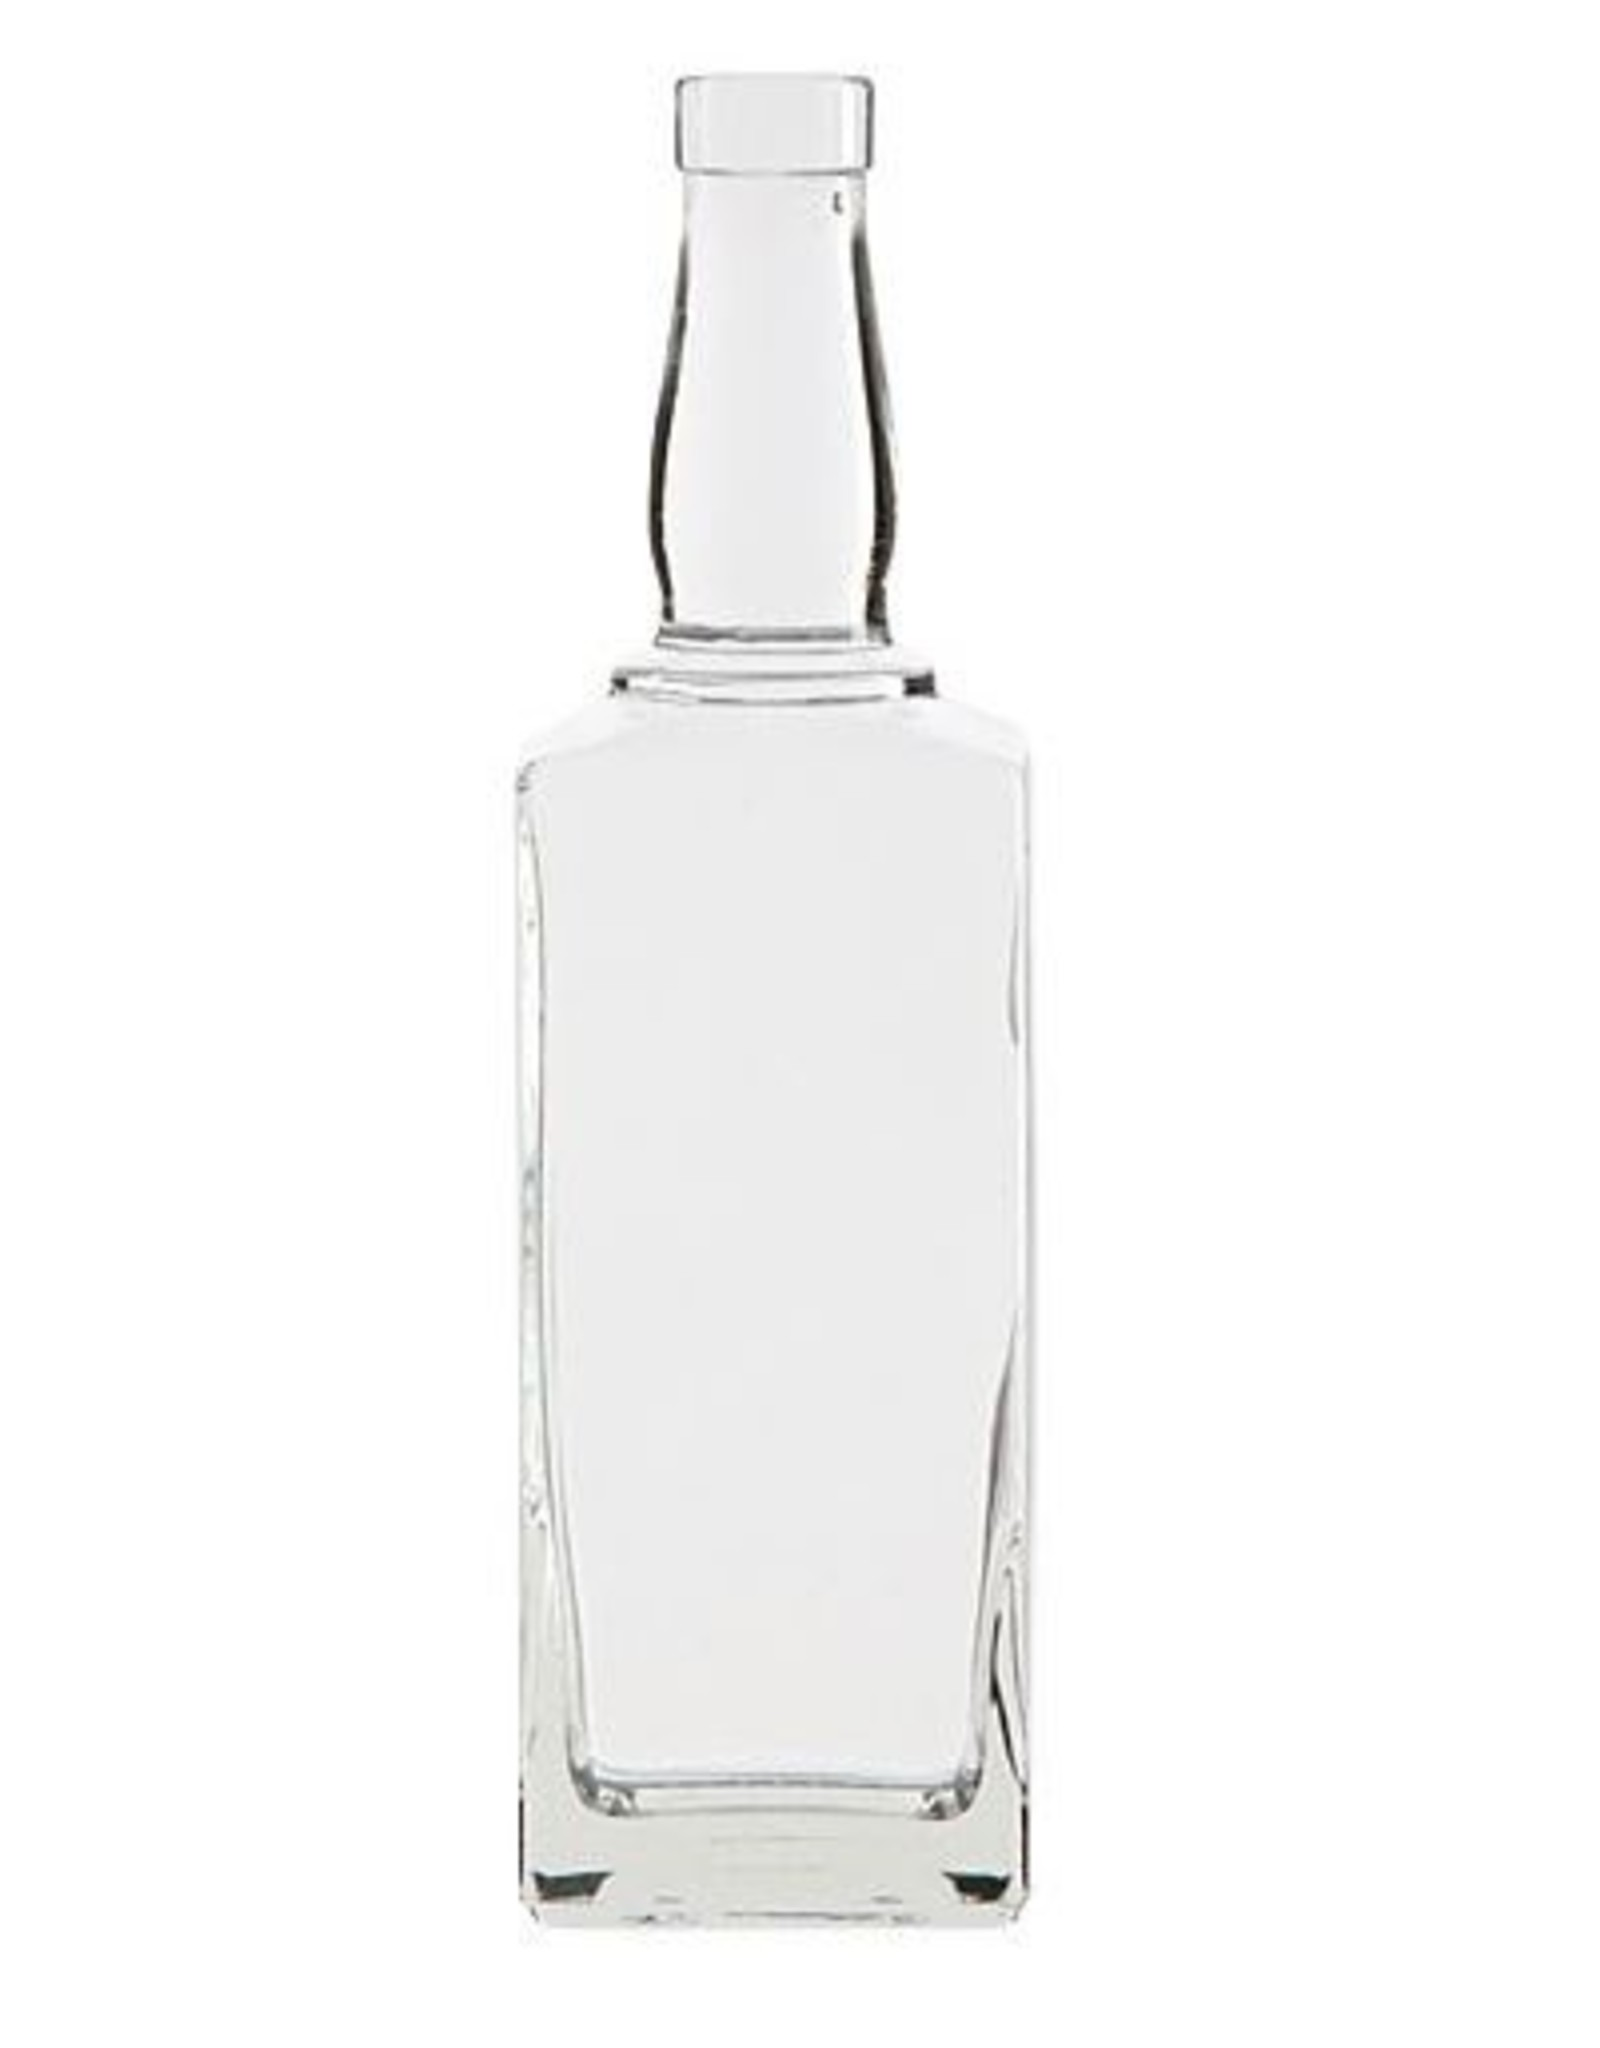 CLEAR 750ML WHISKEY BOTTLE 6/CASE (19mm CK Finish)